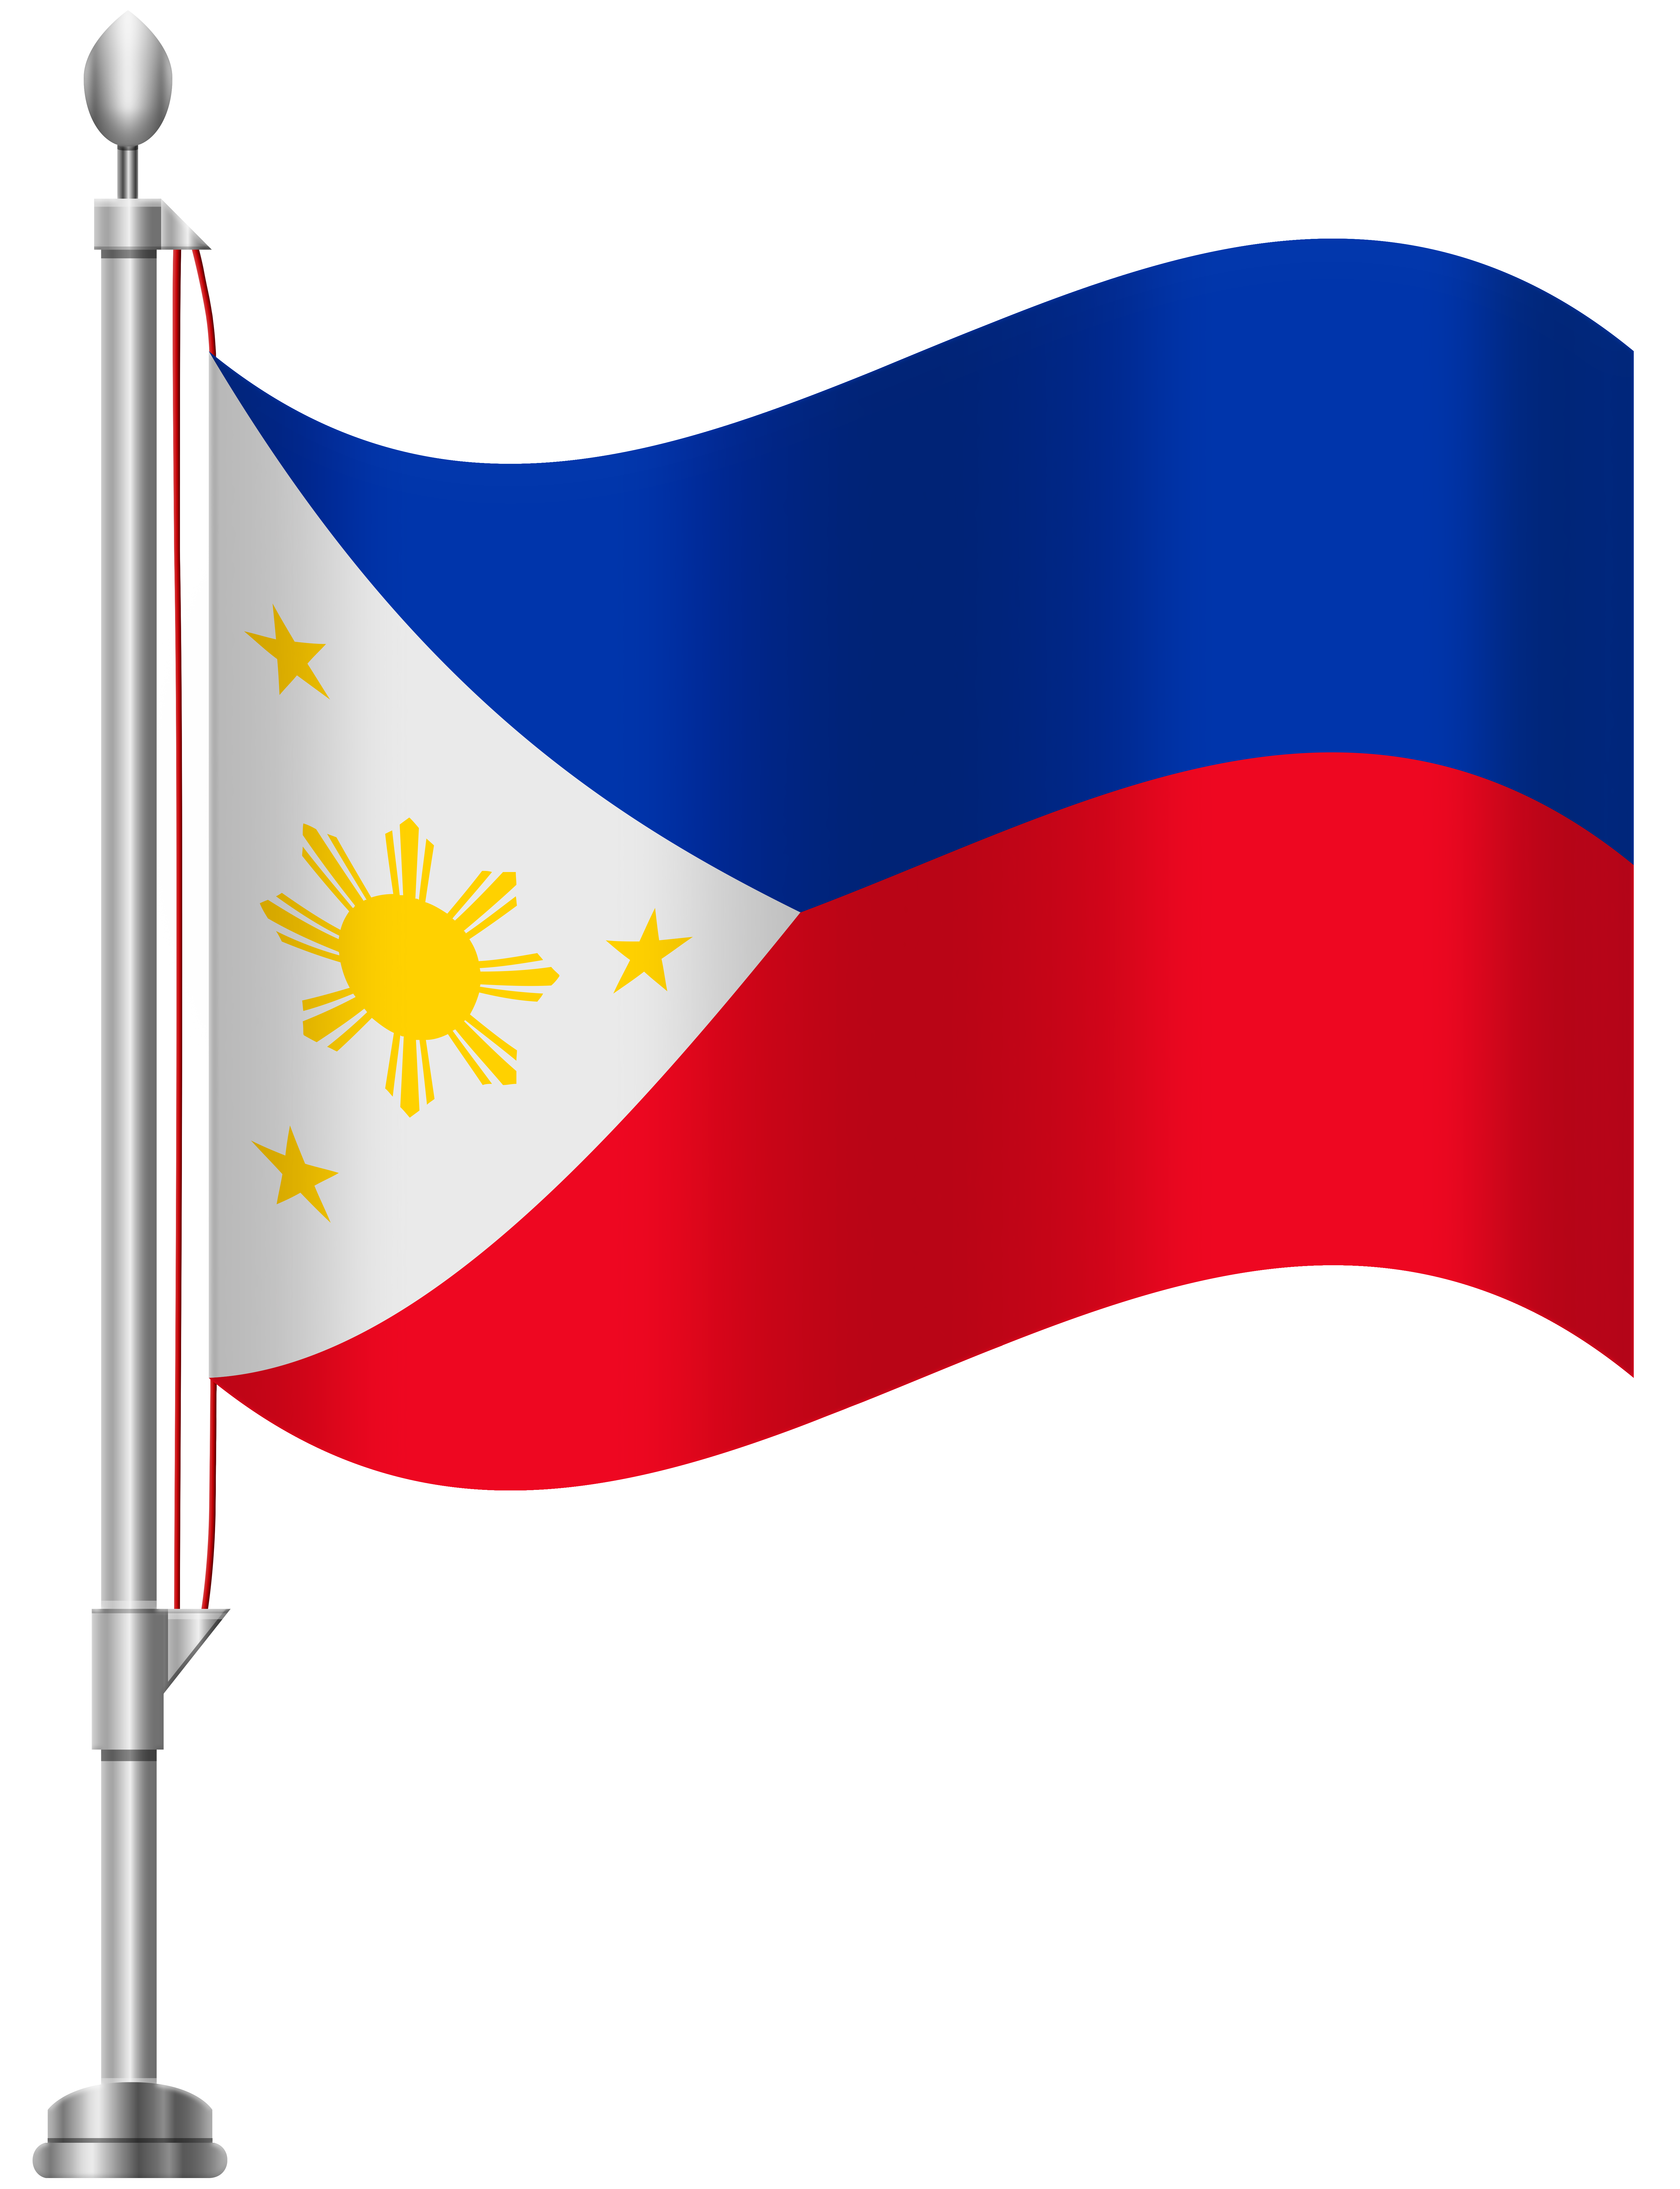 clipart royalty free download Philippines png clip art. Flag clipart